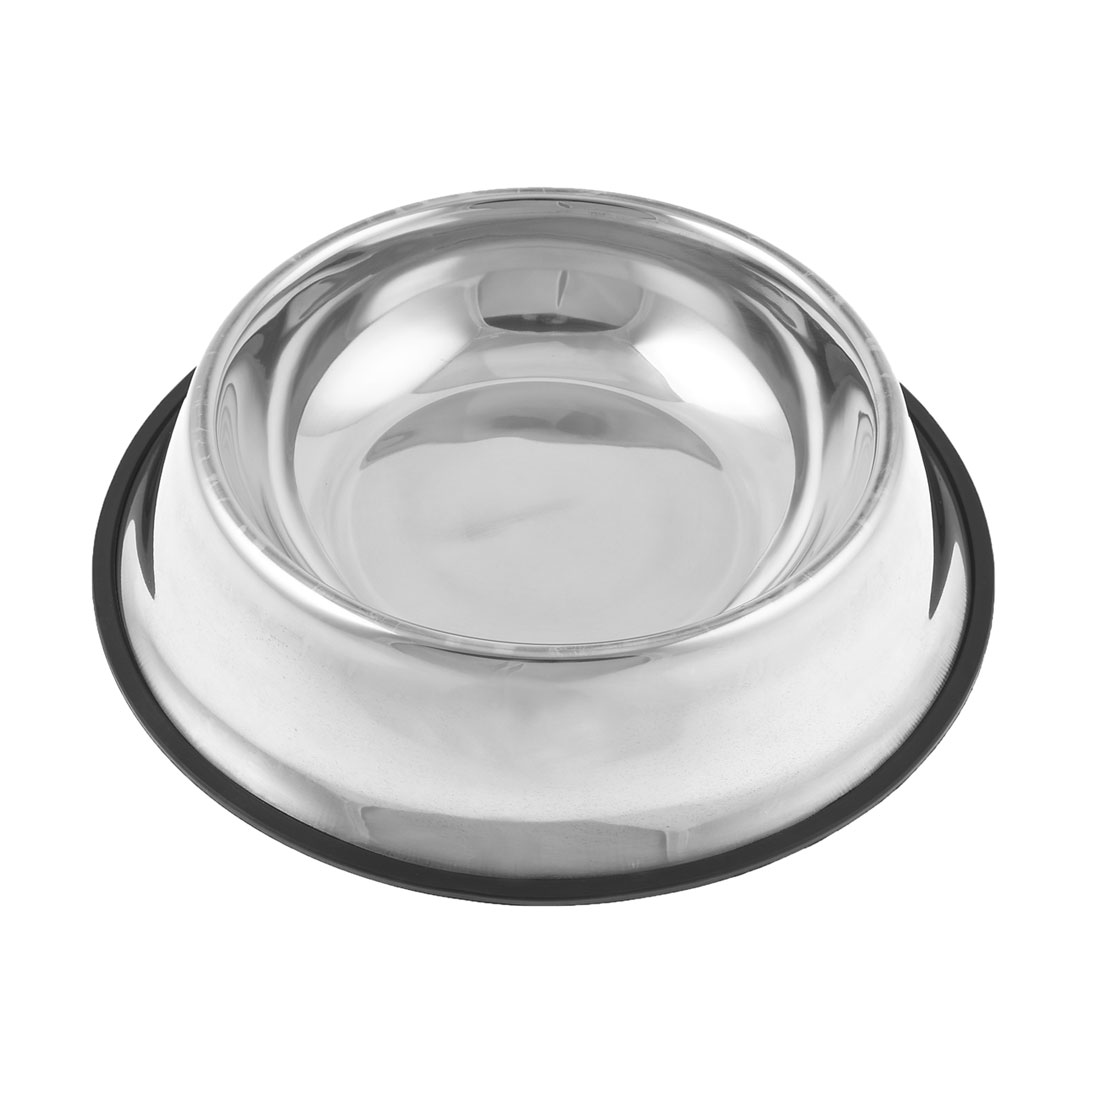 Unique Bargains Nonslip Rubber Ring Base Stainless Steel Cat Pet Dog Water Food Bowl 2.4